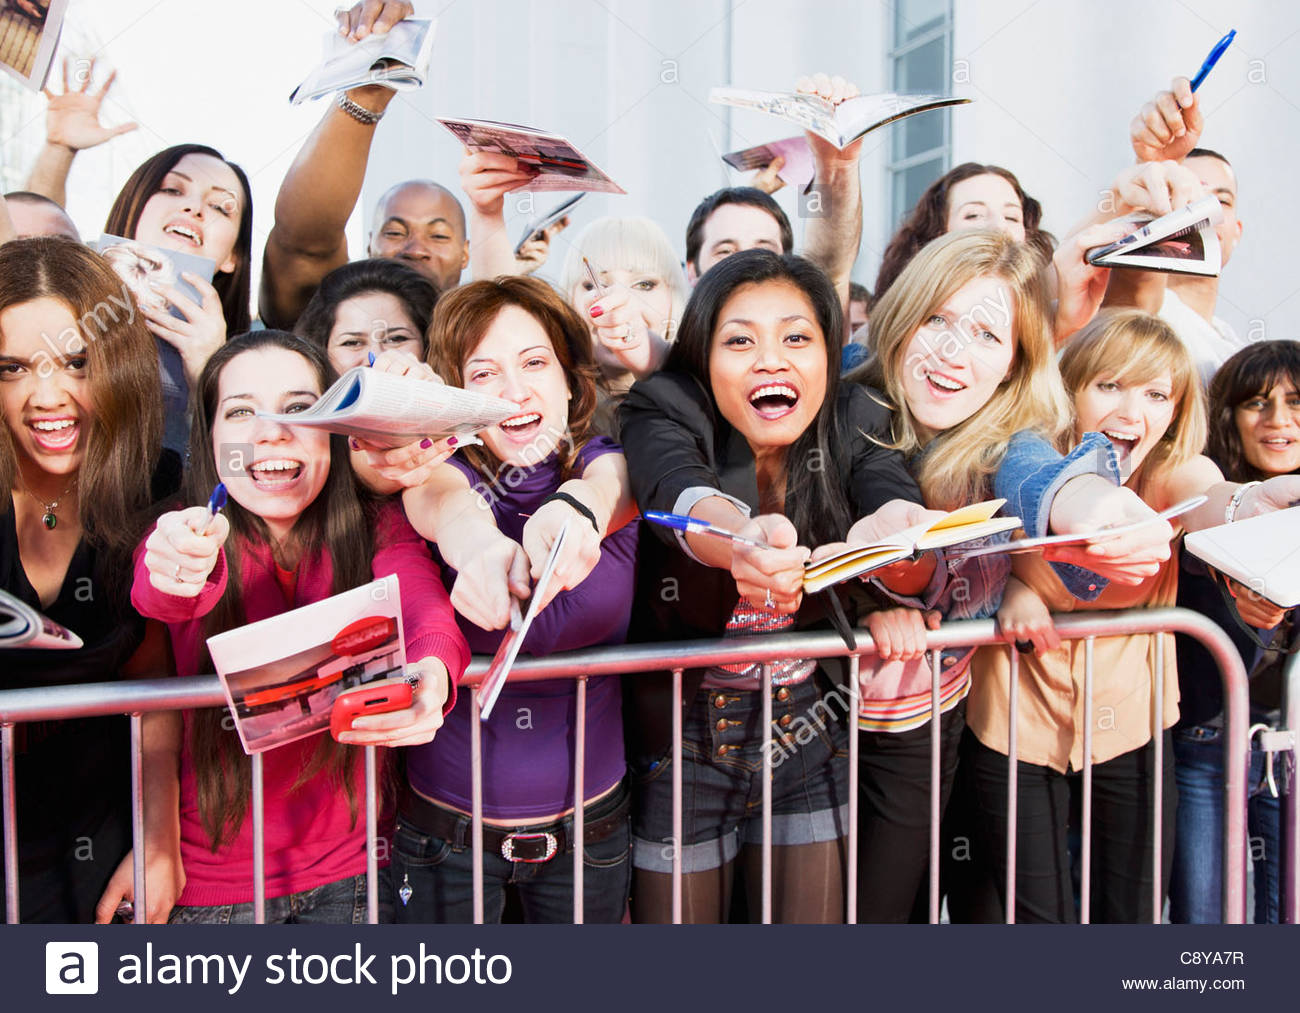 Fans taking pictures with cell phone behind barrier stock photo - Fans Offering Notepads For Celebrity S Signature Behind Barrier